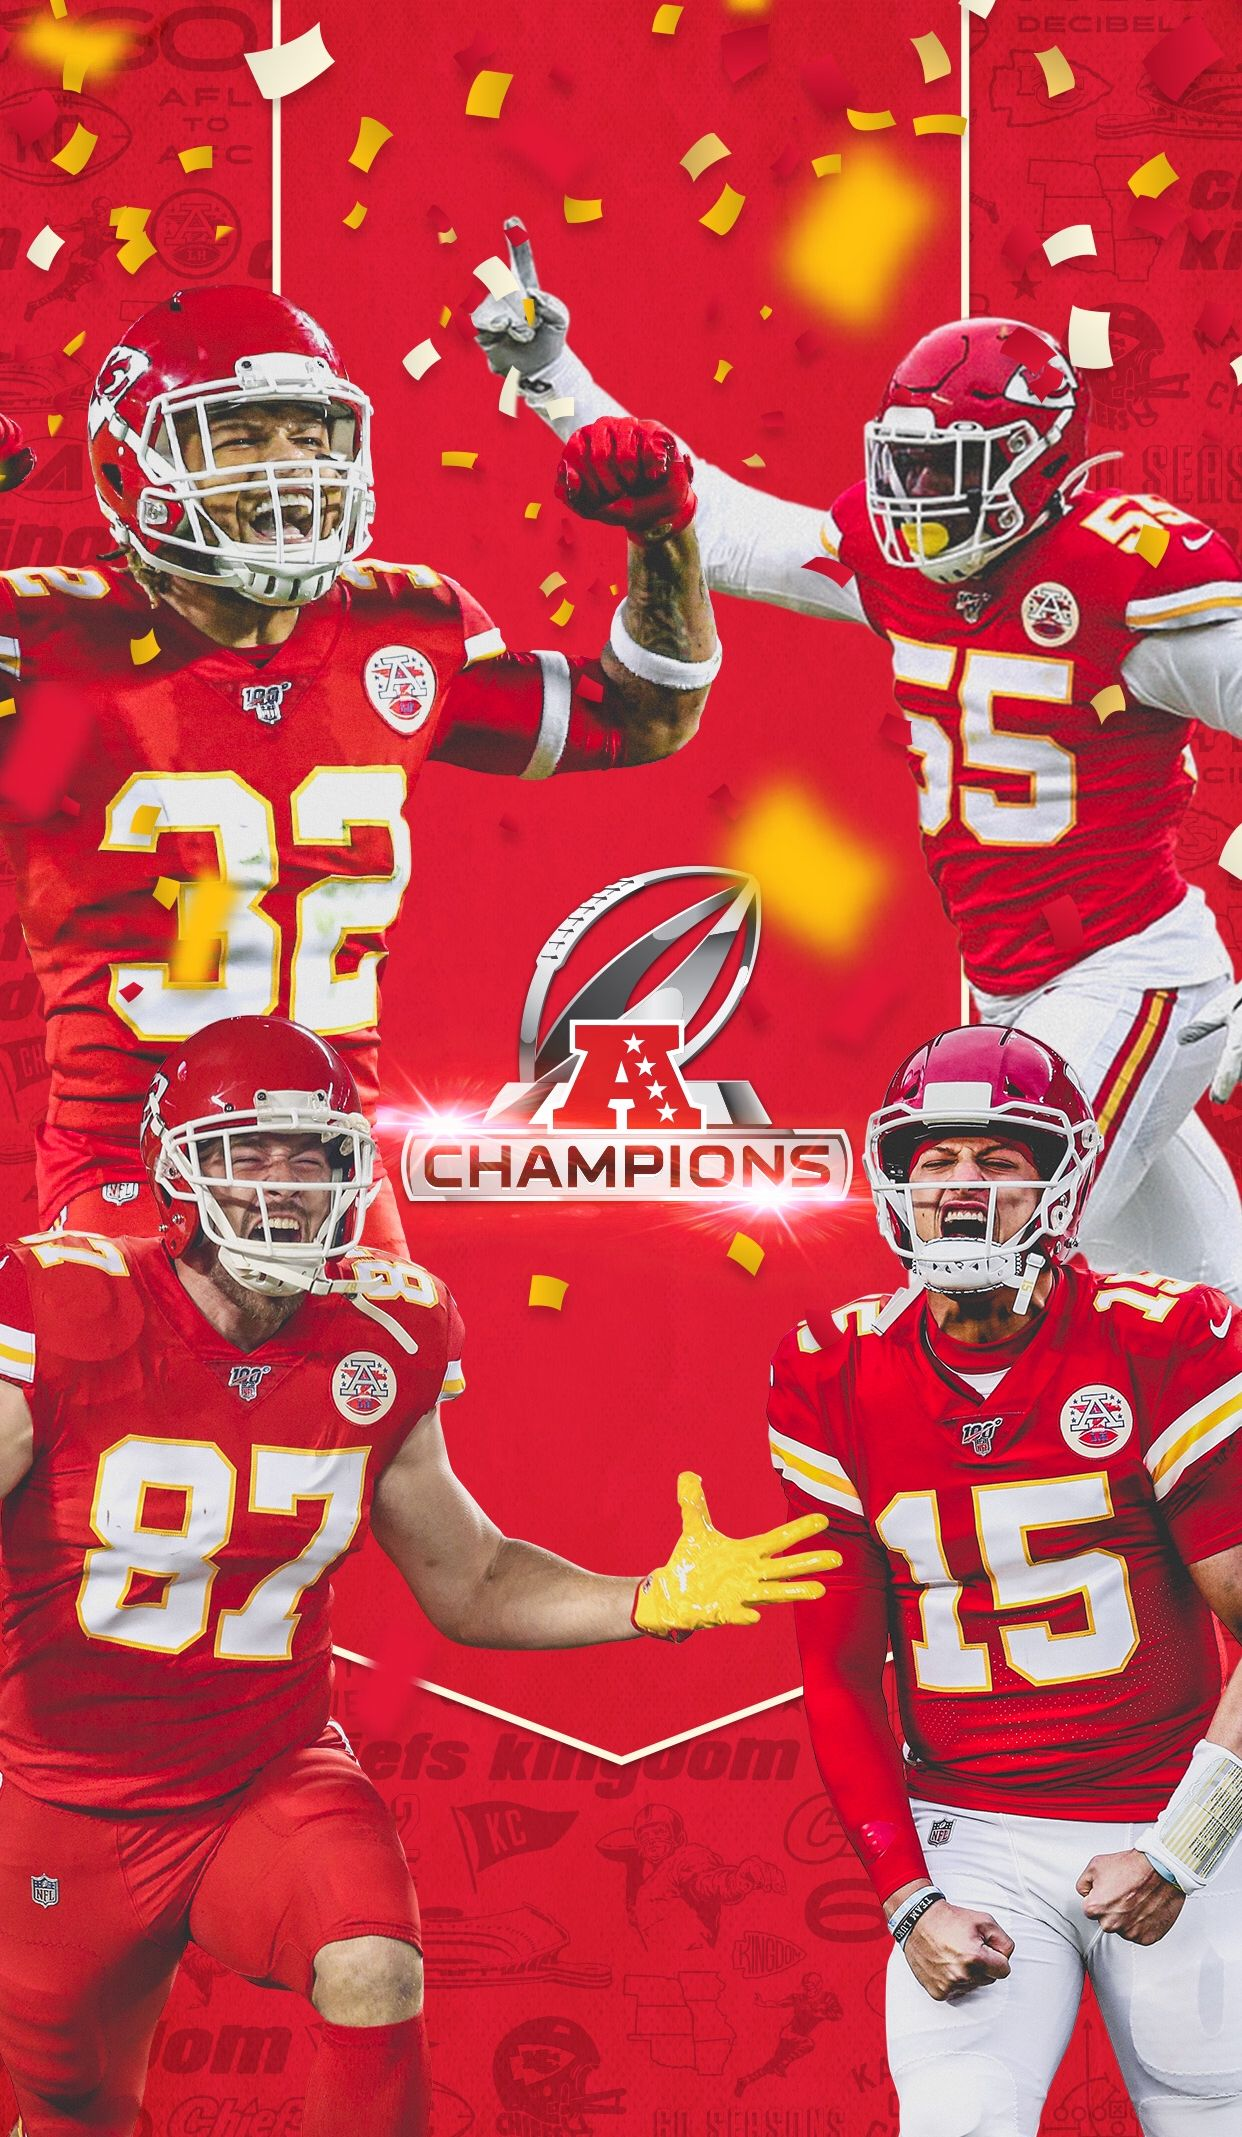 Kansas City Chiefs On Twitter Kc Chiefs Football Kansas City Chiefs Kansas City Chiefs Football